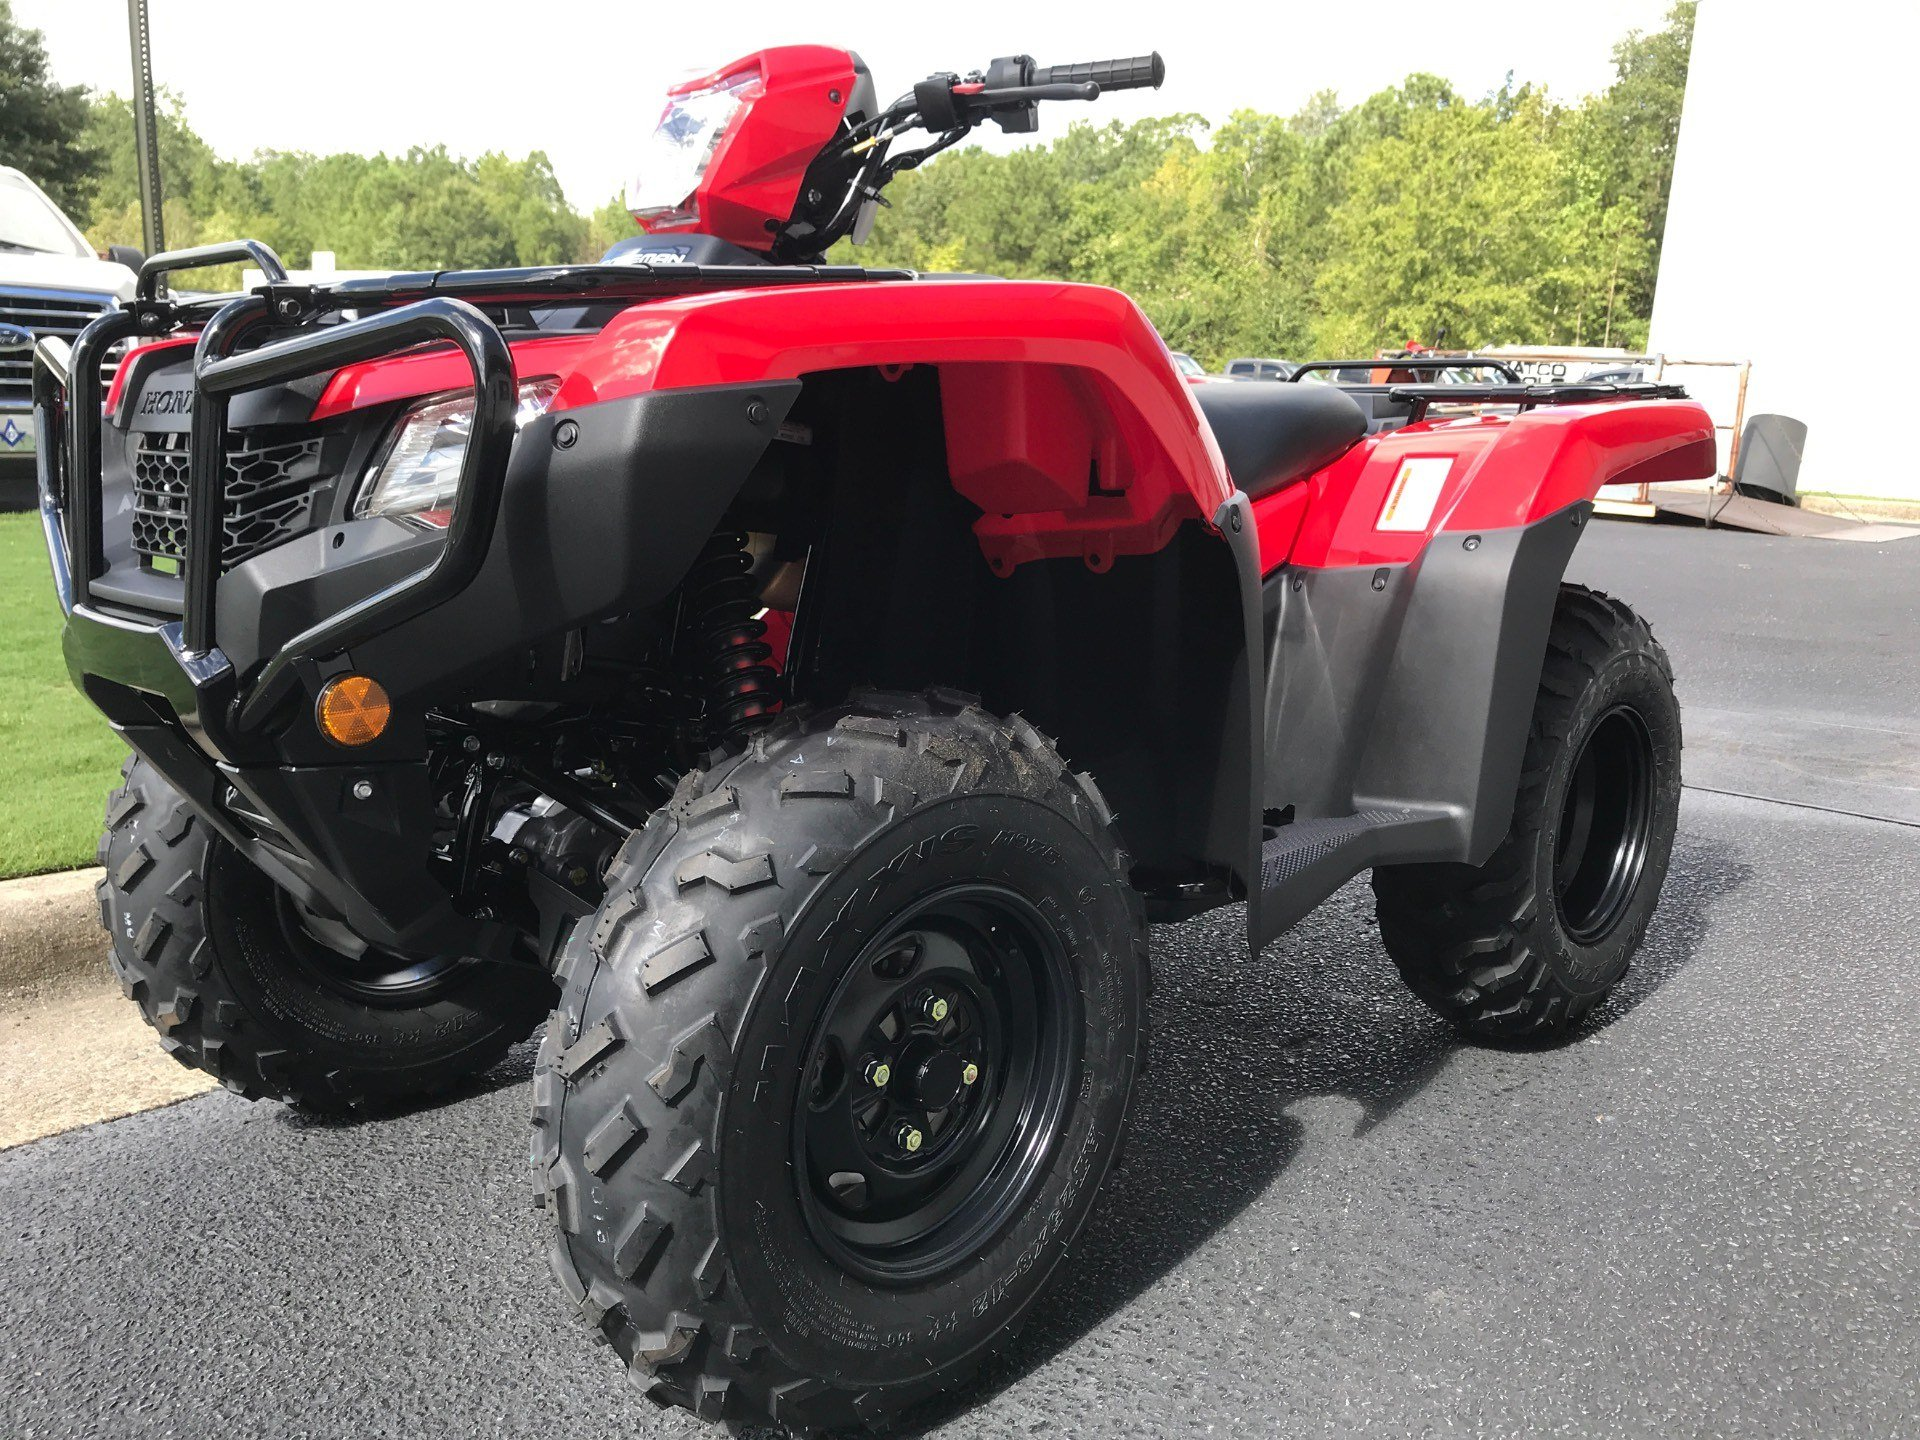 2021 Honda FourTrax Foreman 4x4 in Greenville, North Carolina - Photo 4